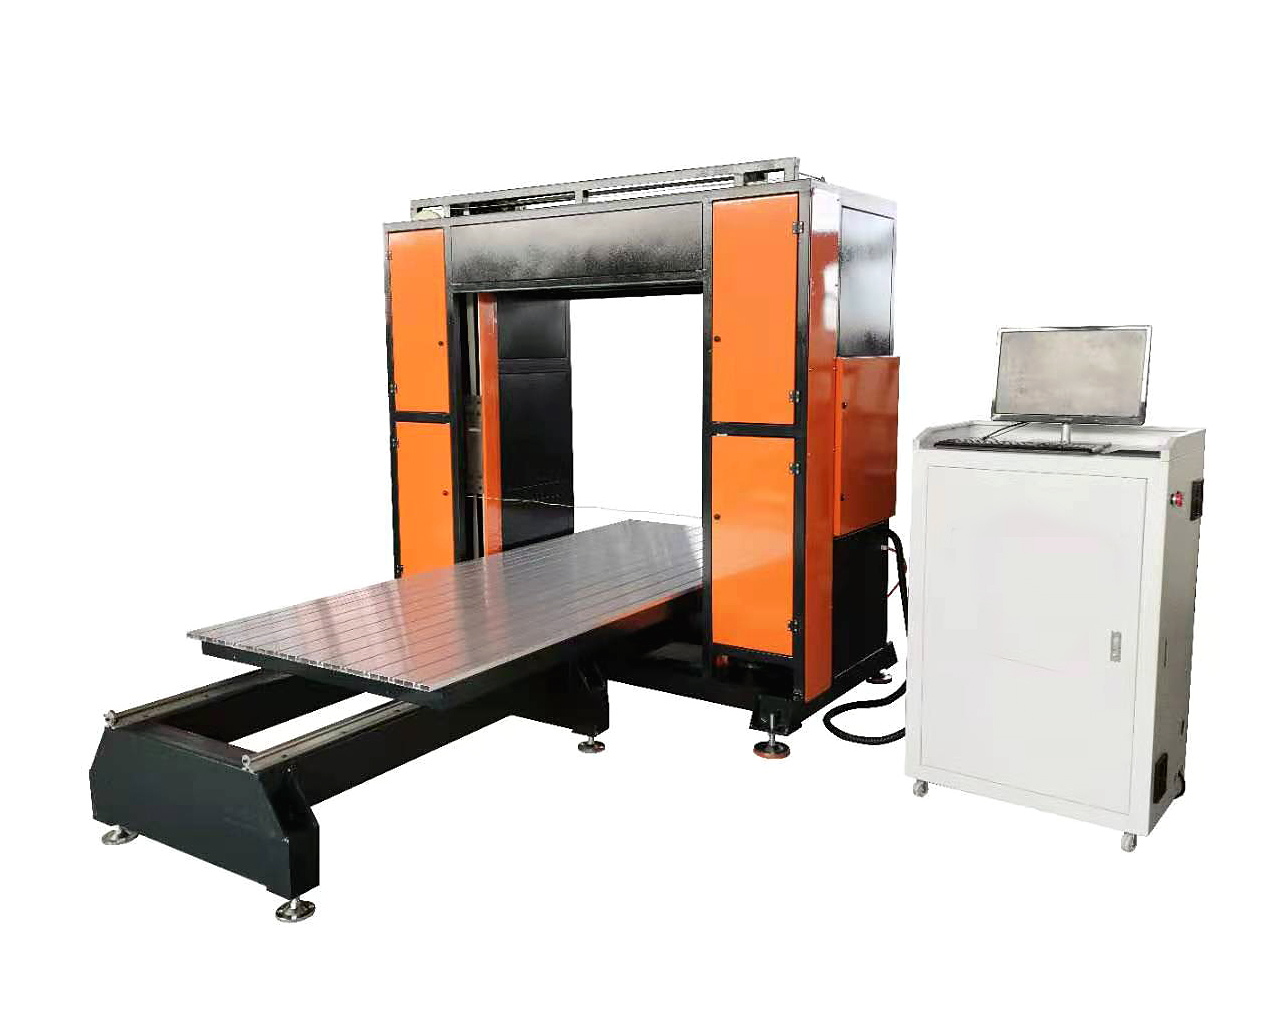 Superstar CNC CX- CNC Wire Foam Cutting Machine